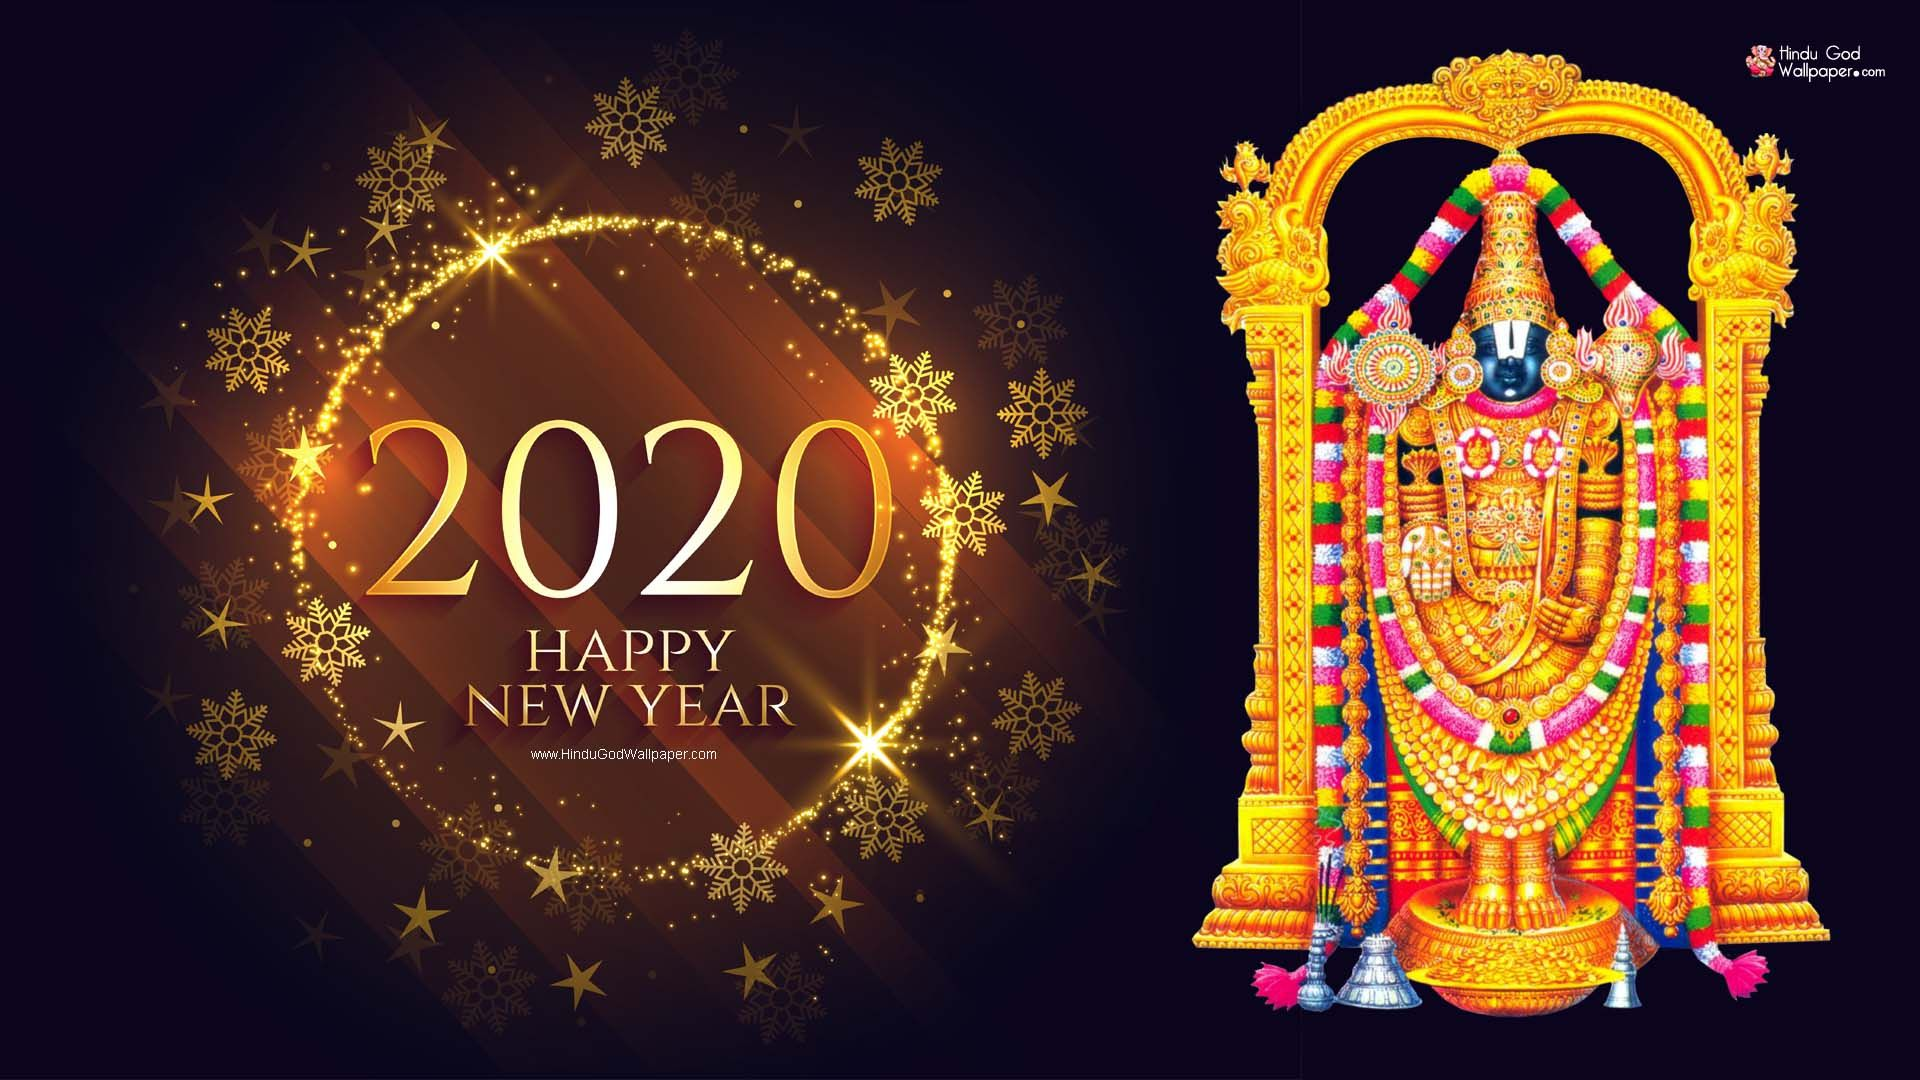 2020 New Year download nice wallpaper